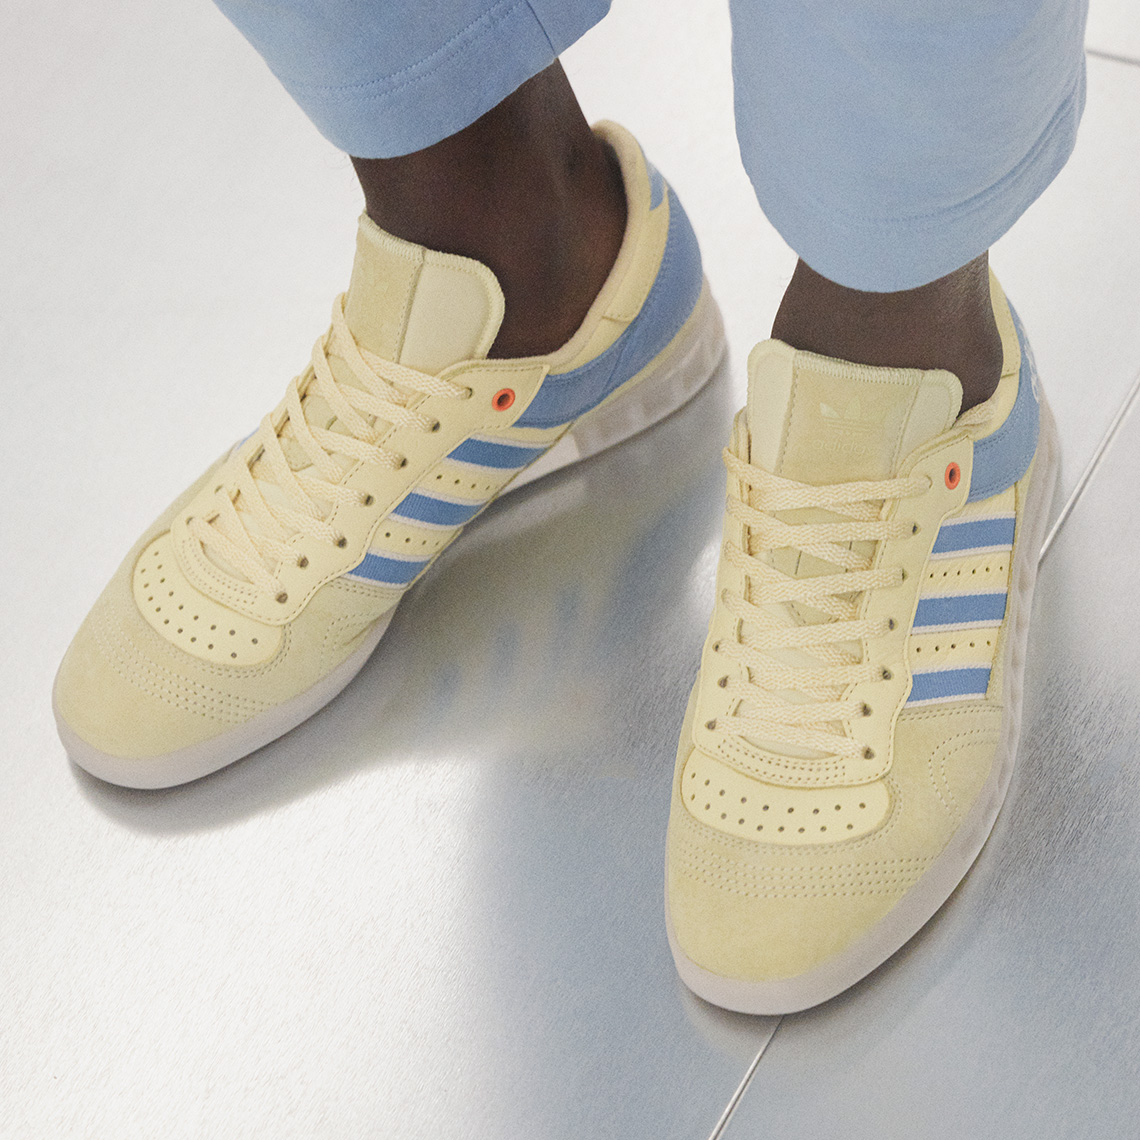 newest 1c571 e9253 Oyster Holdings x adidas 350. Release Date March 29th, 2018. Releasing At  adidas.com